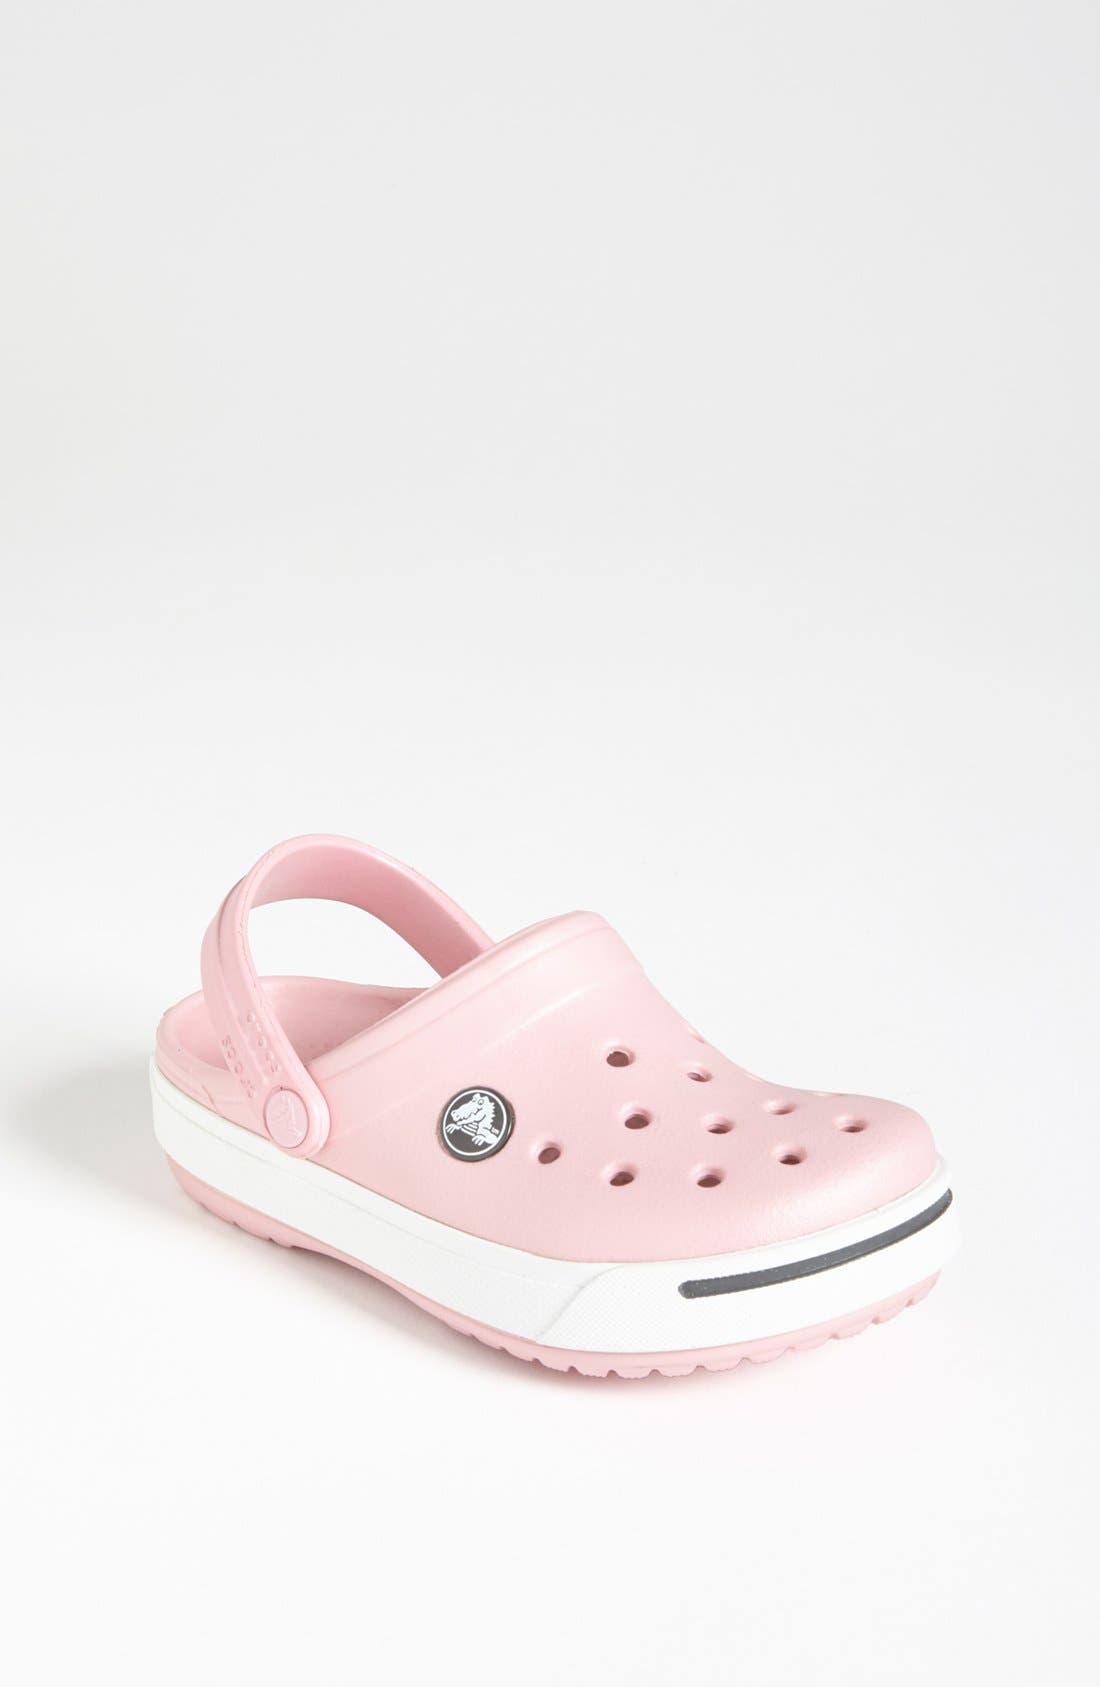 Alternate Image 1 Selected - CROCS™ 'Crocband II' Clog (Walker, Toddler & Little Kid)